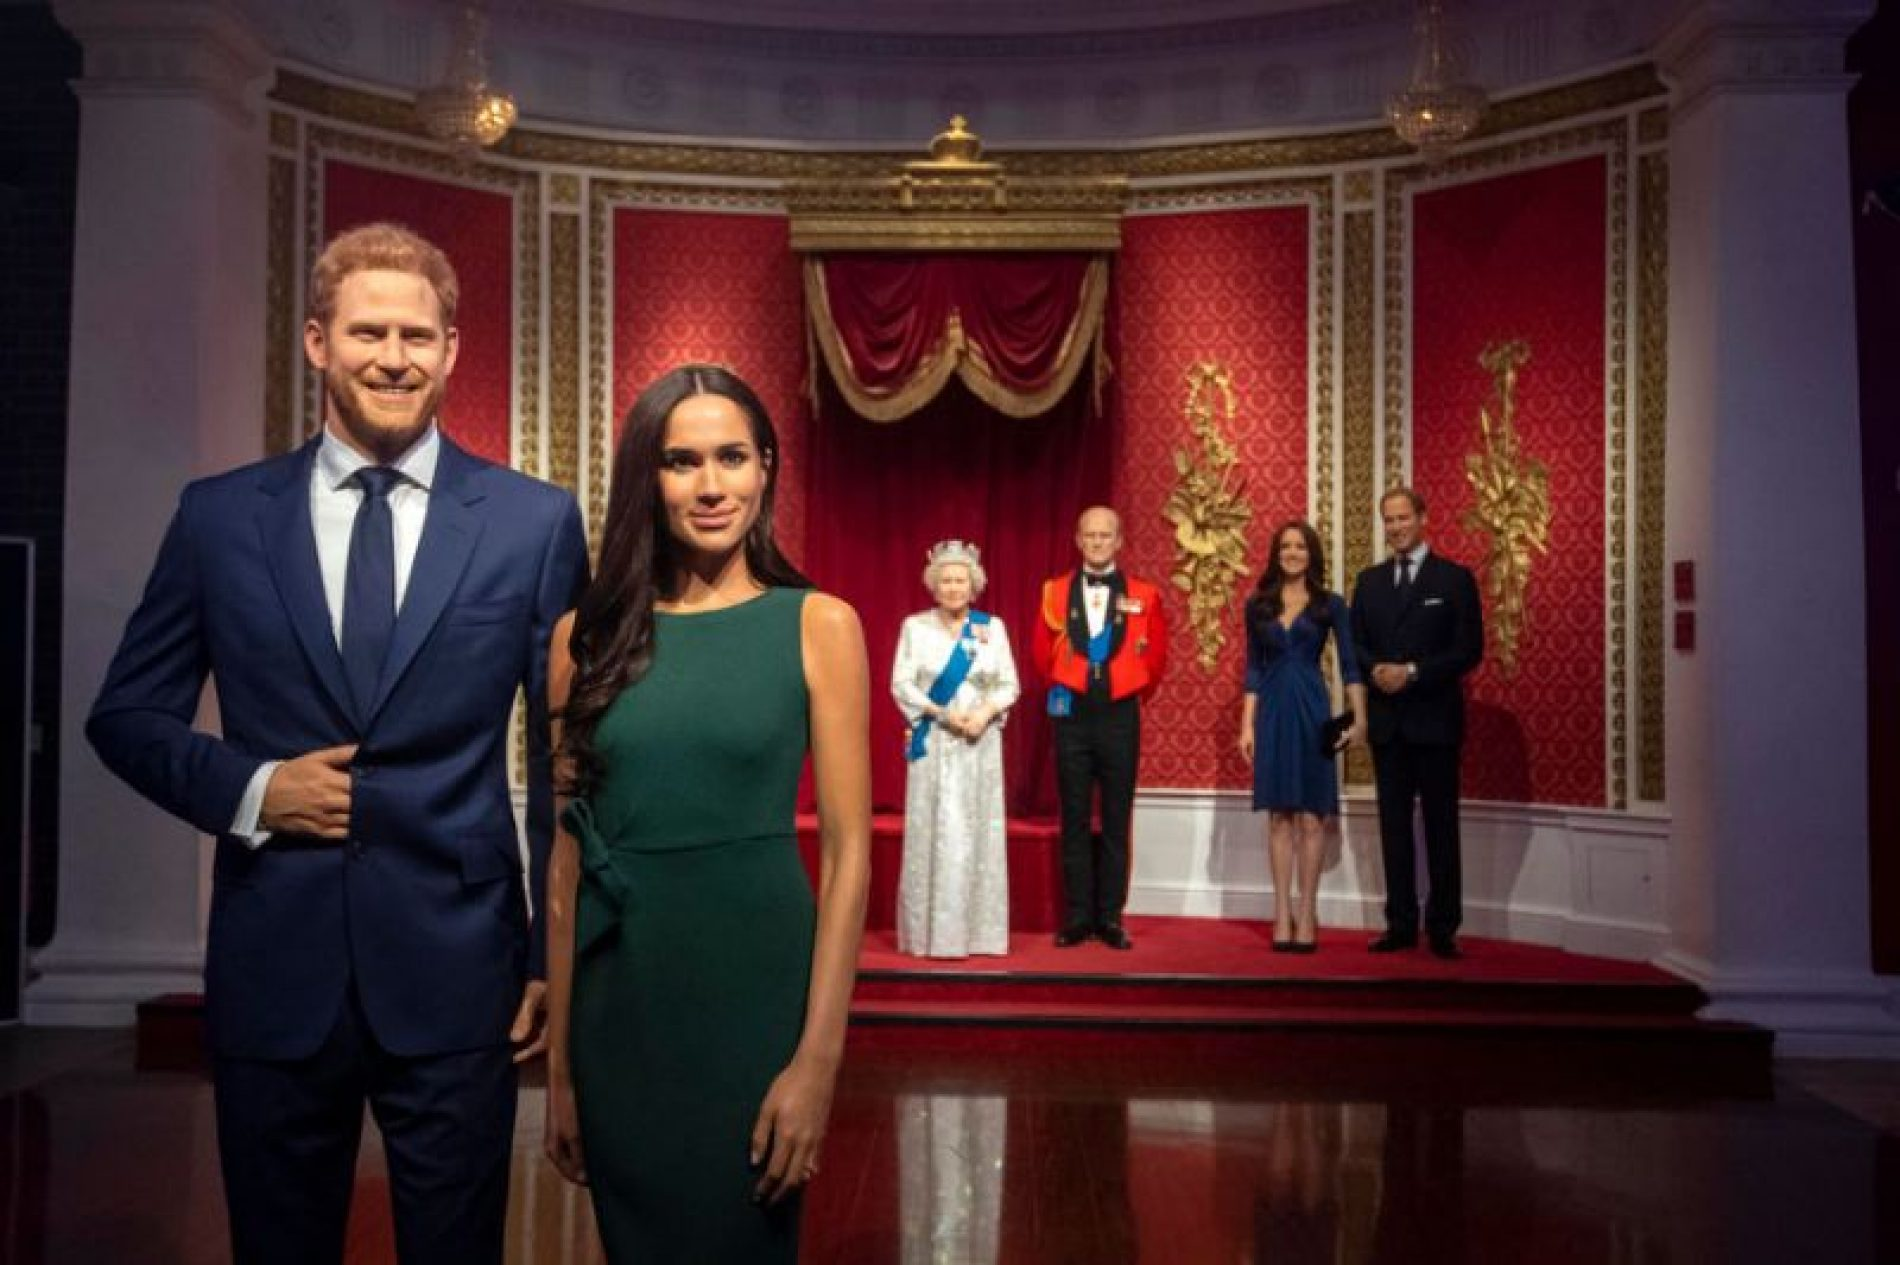 Prince Harry and Meghan Markle are separated from the royals at Madame Tussauds London | Other reactions to the Sussexes' announcement